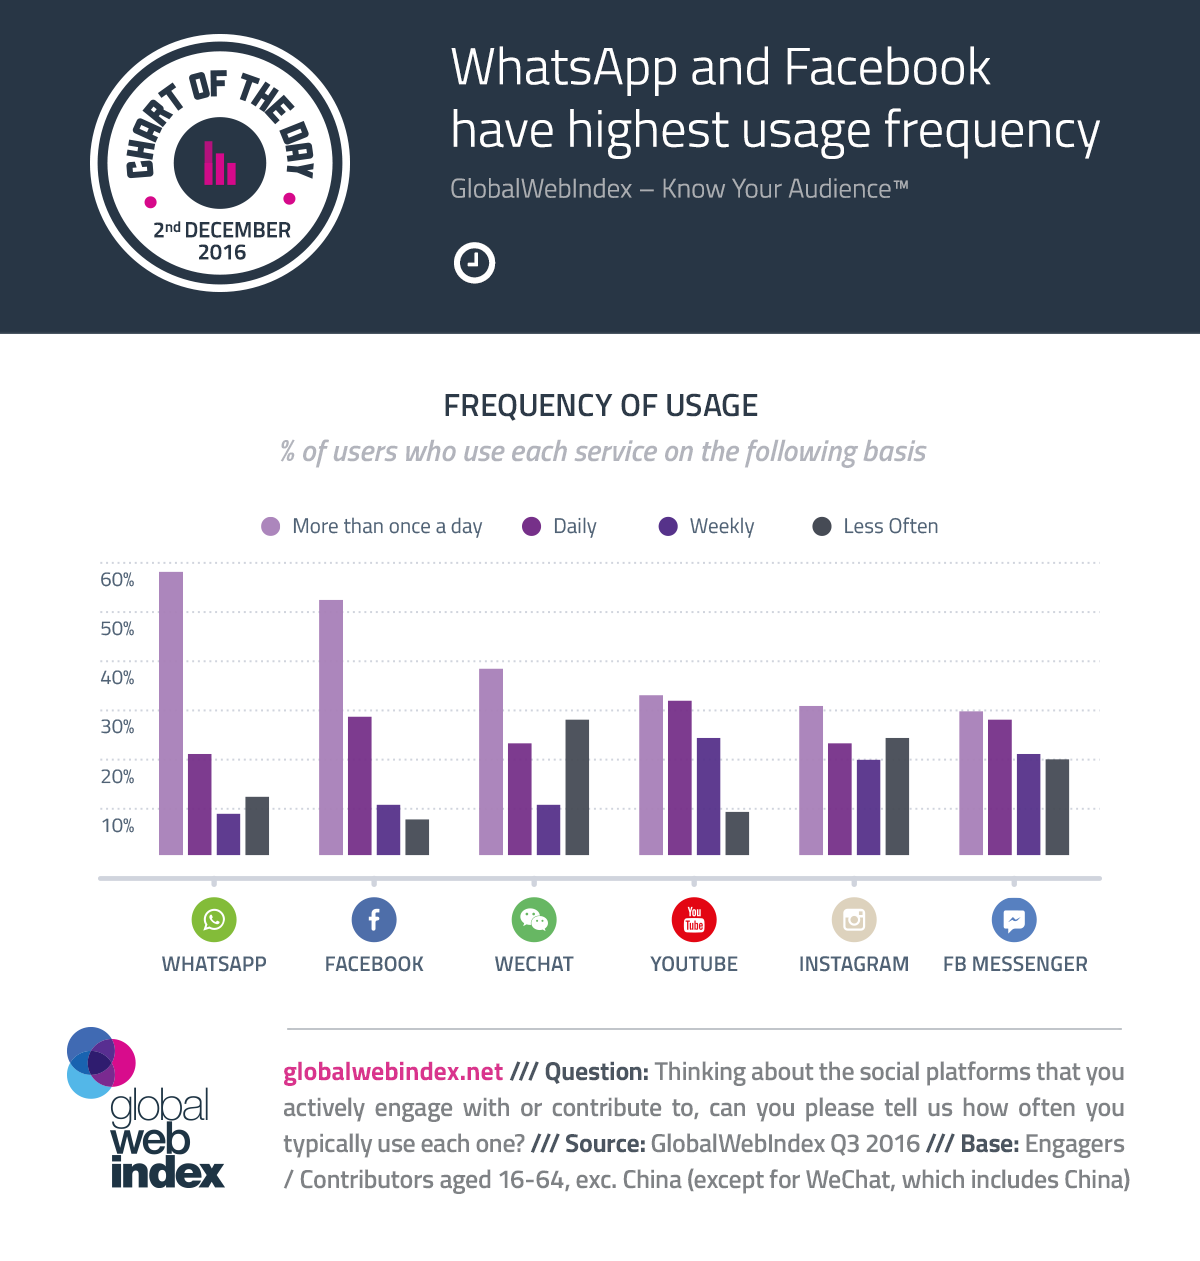 WhatsApp and Facebook have highest usage frequency